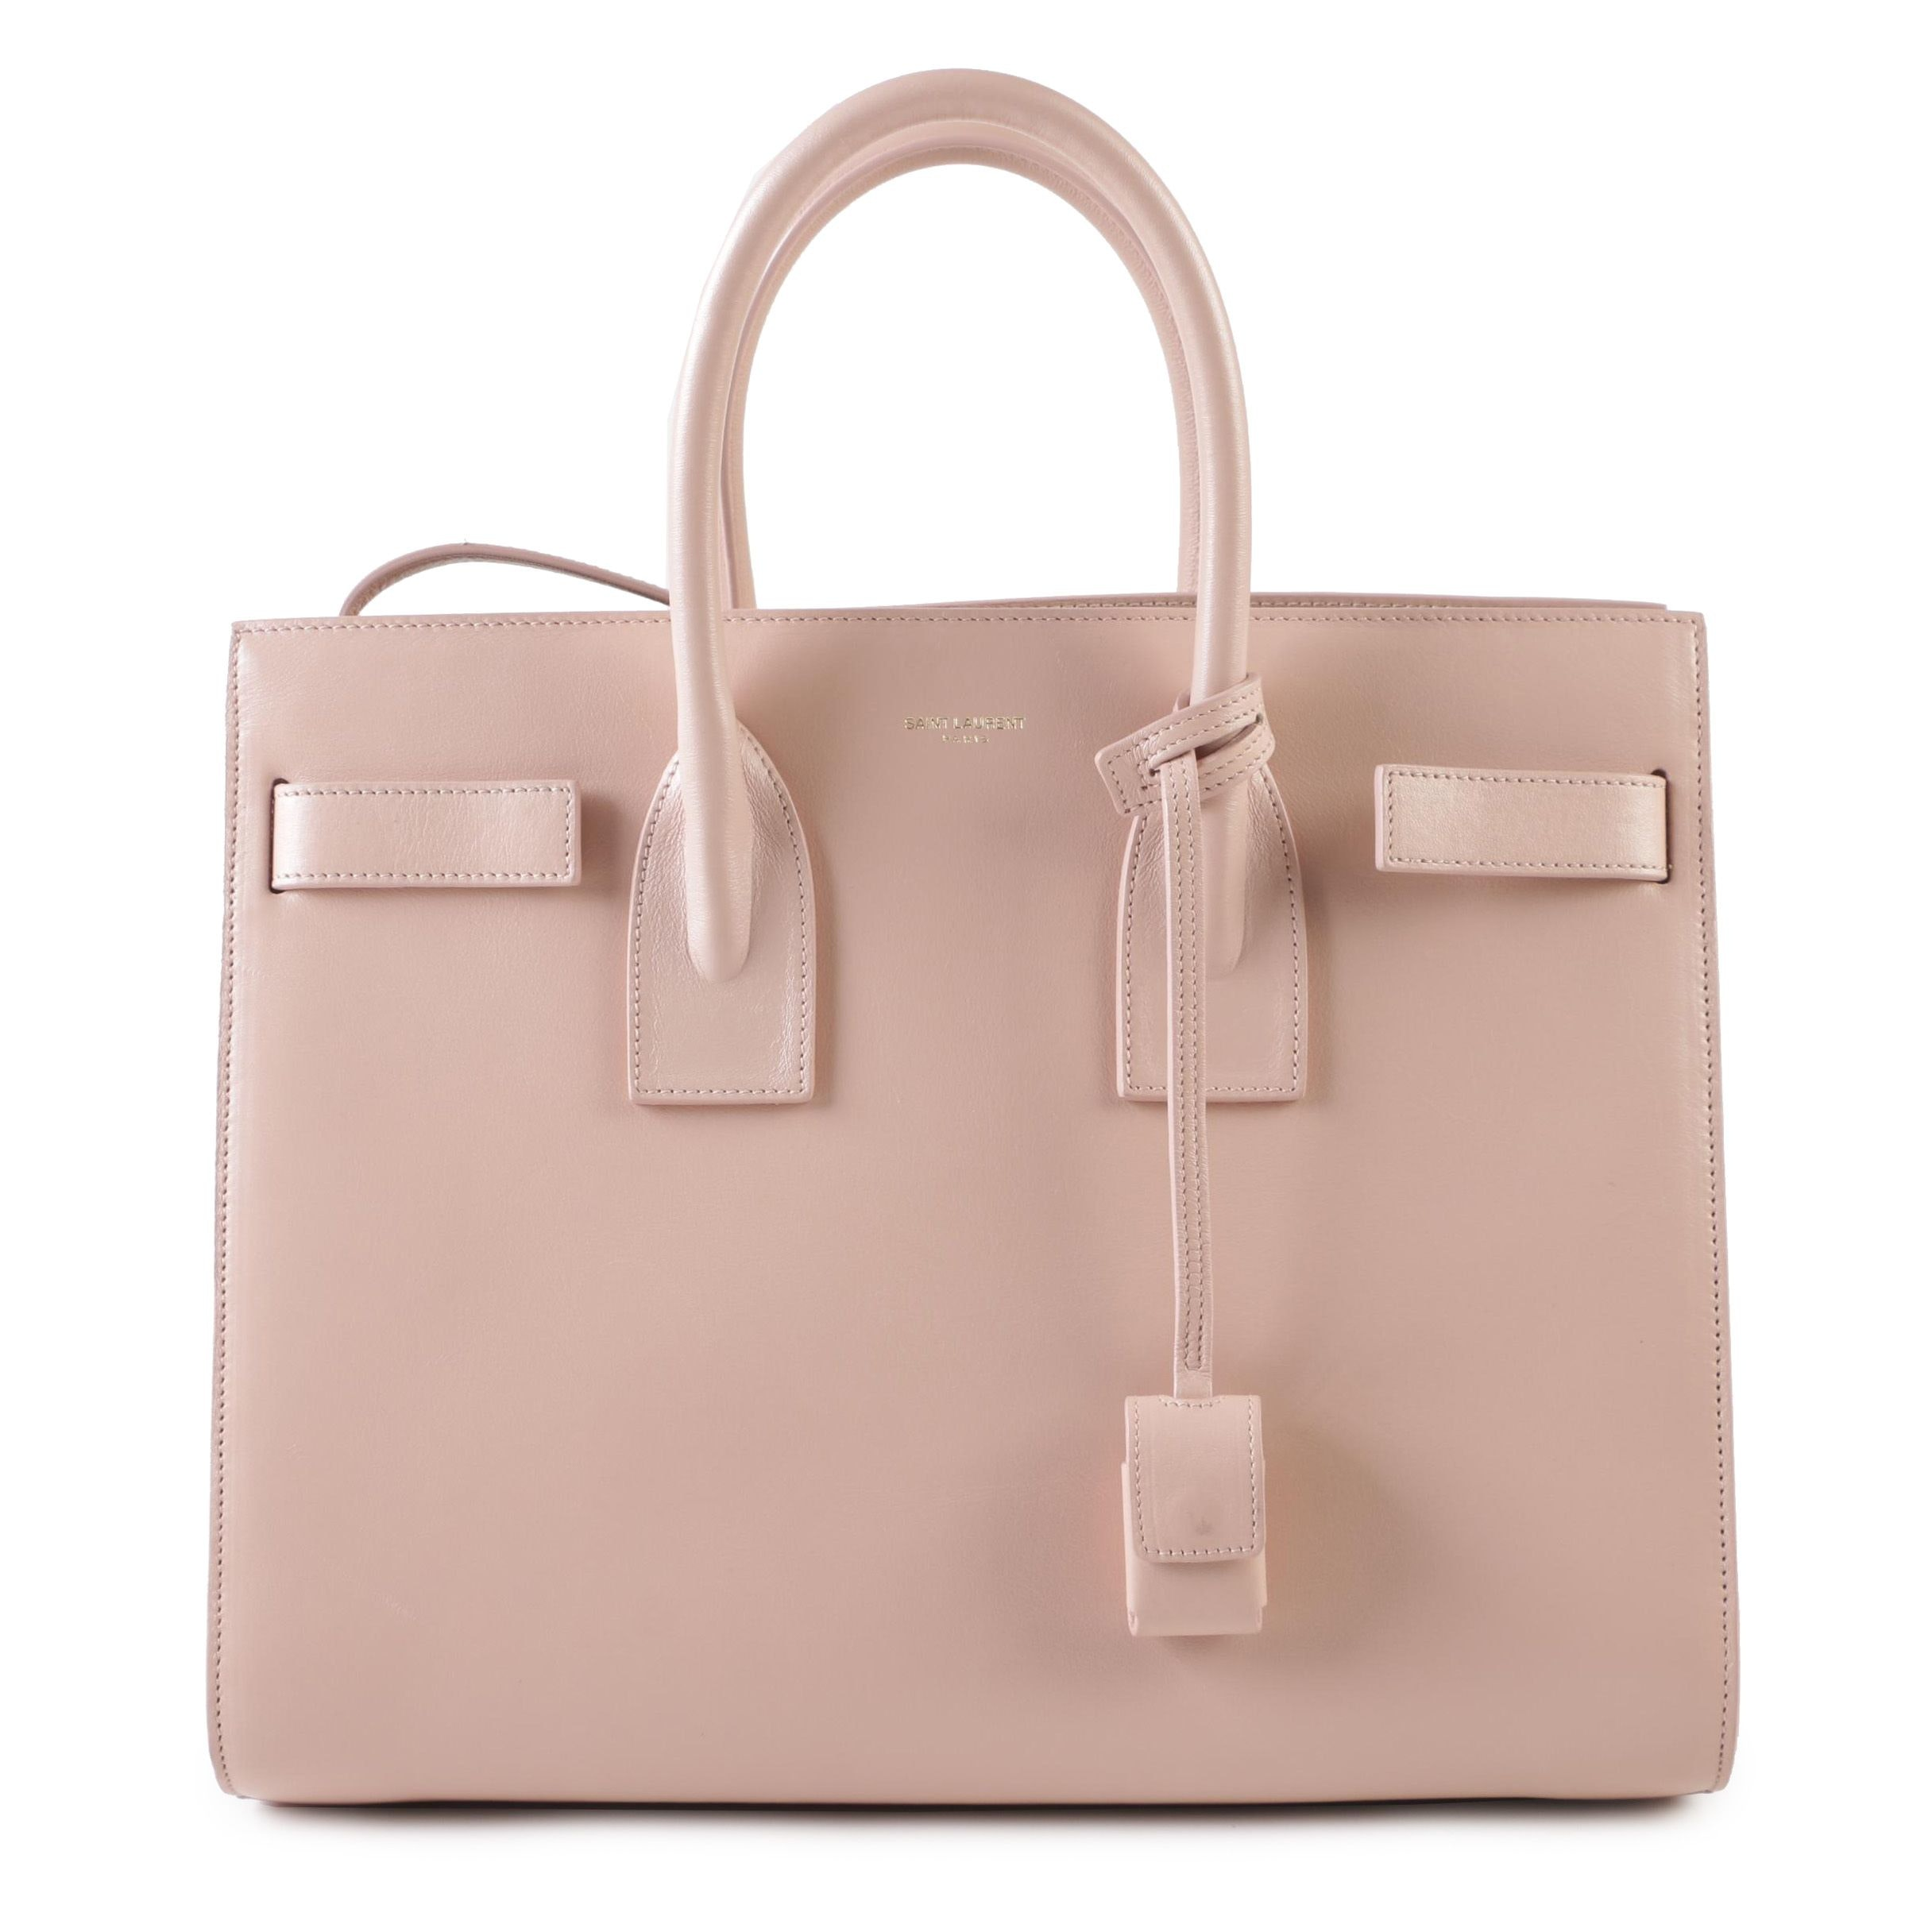 2015 Saint Laurent Sac de Jour Small Bag in Smooth Pale Pink Calfskin Leather